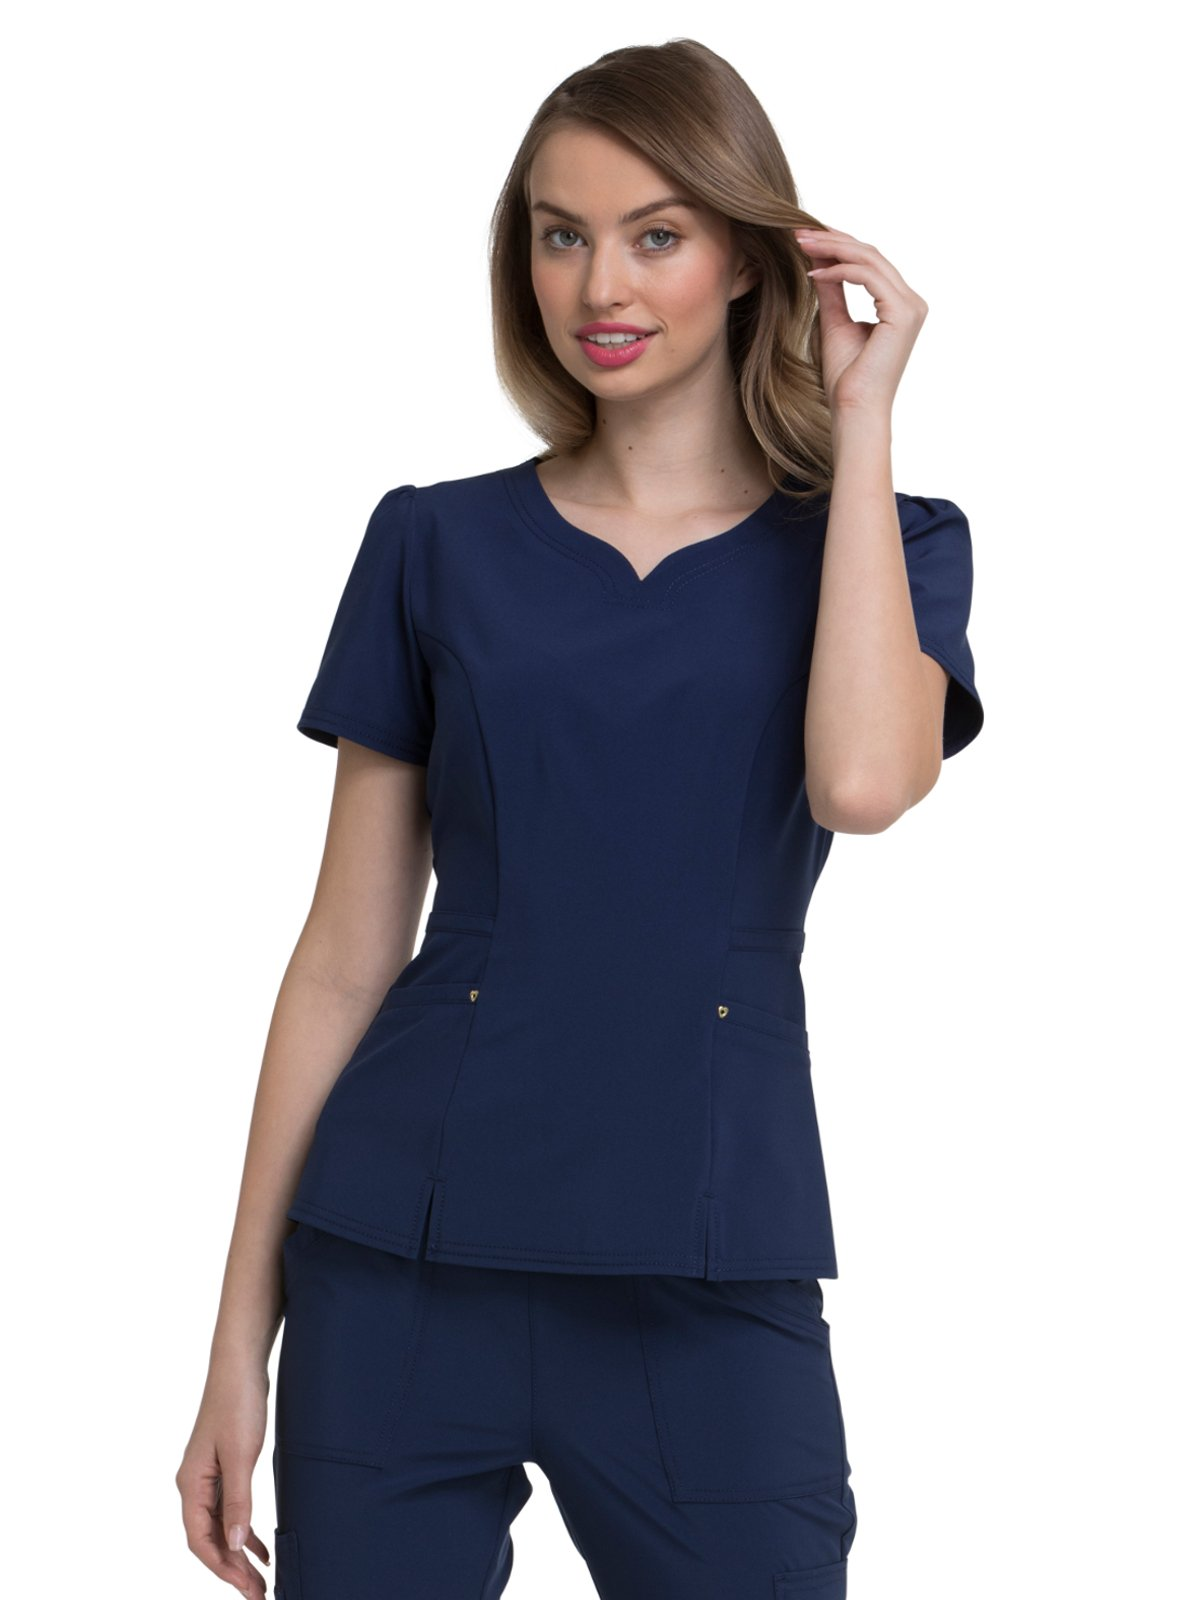 HeartSoul Love Always by Women's V-Neck Solid Scrub Top Small Navy by HeartSoul (Image #1)